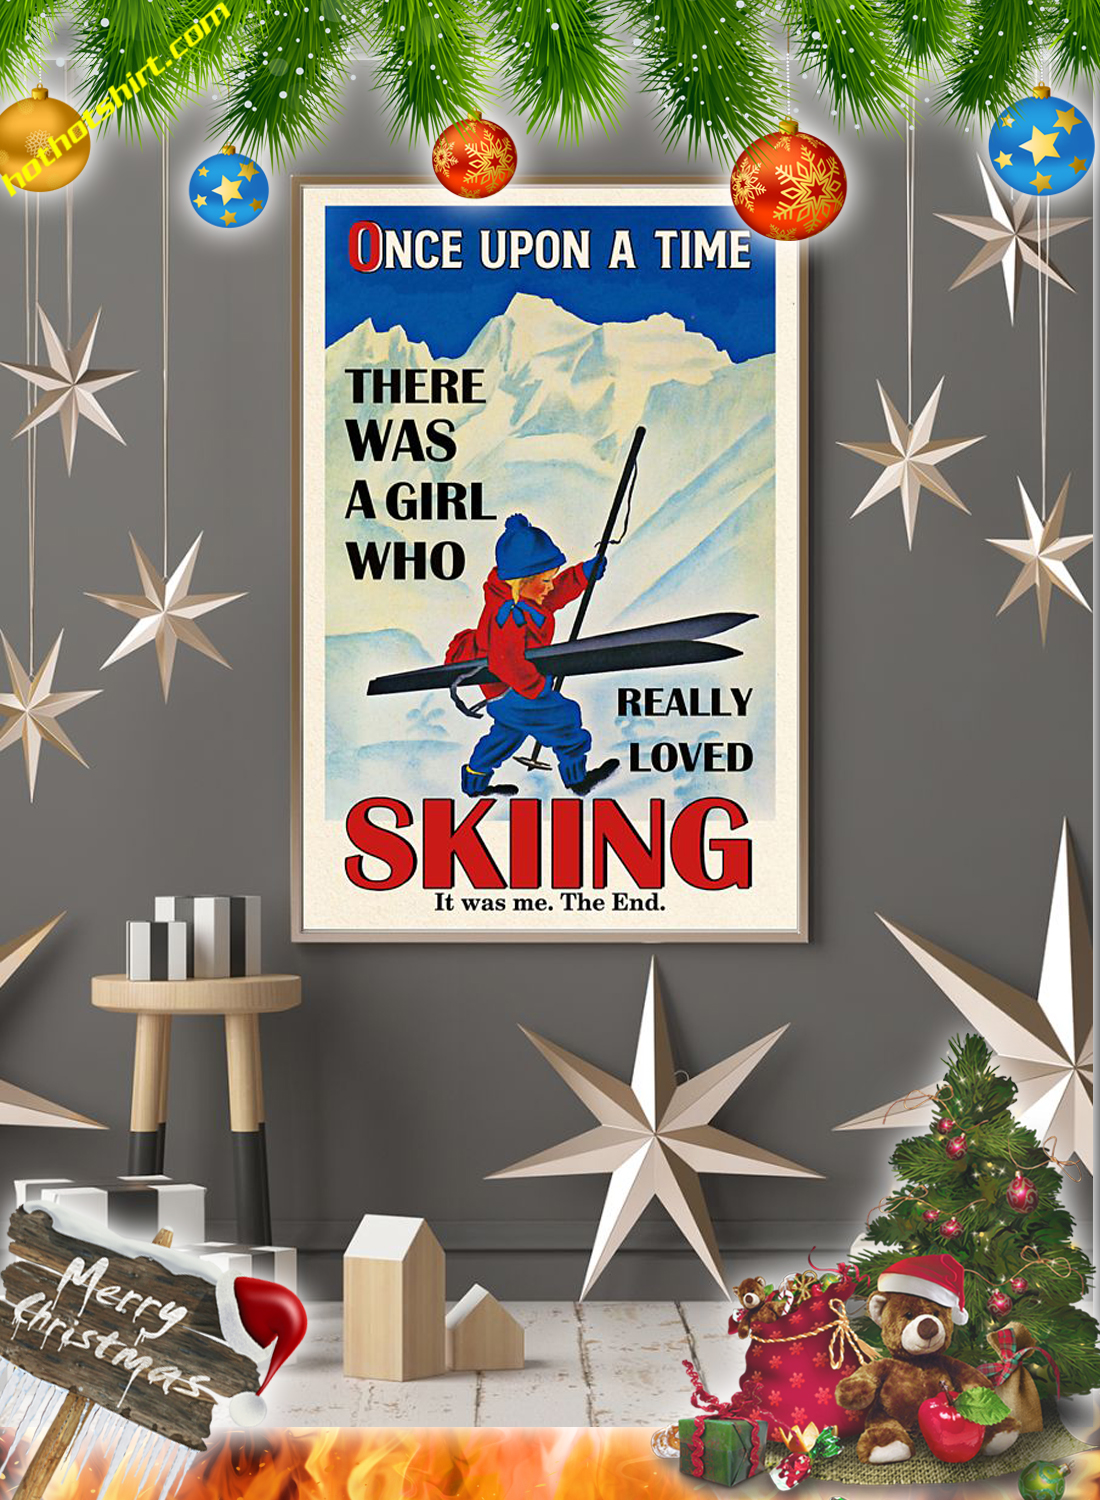 There was a girl who really loved skiing Poster 1